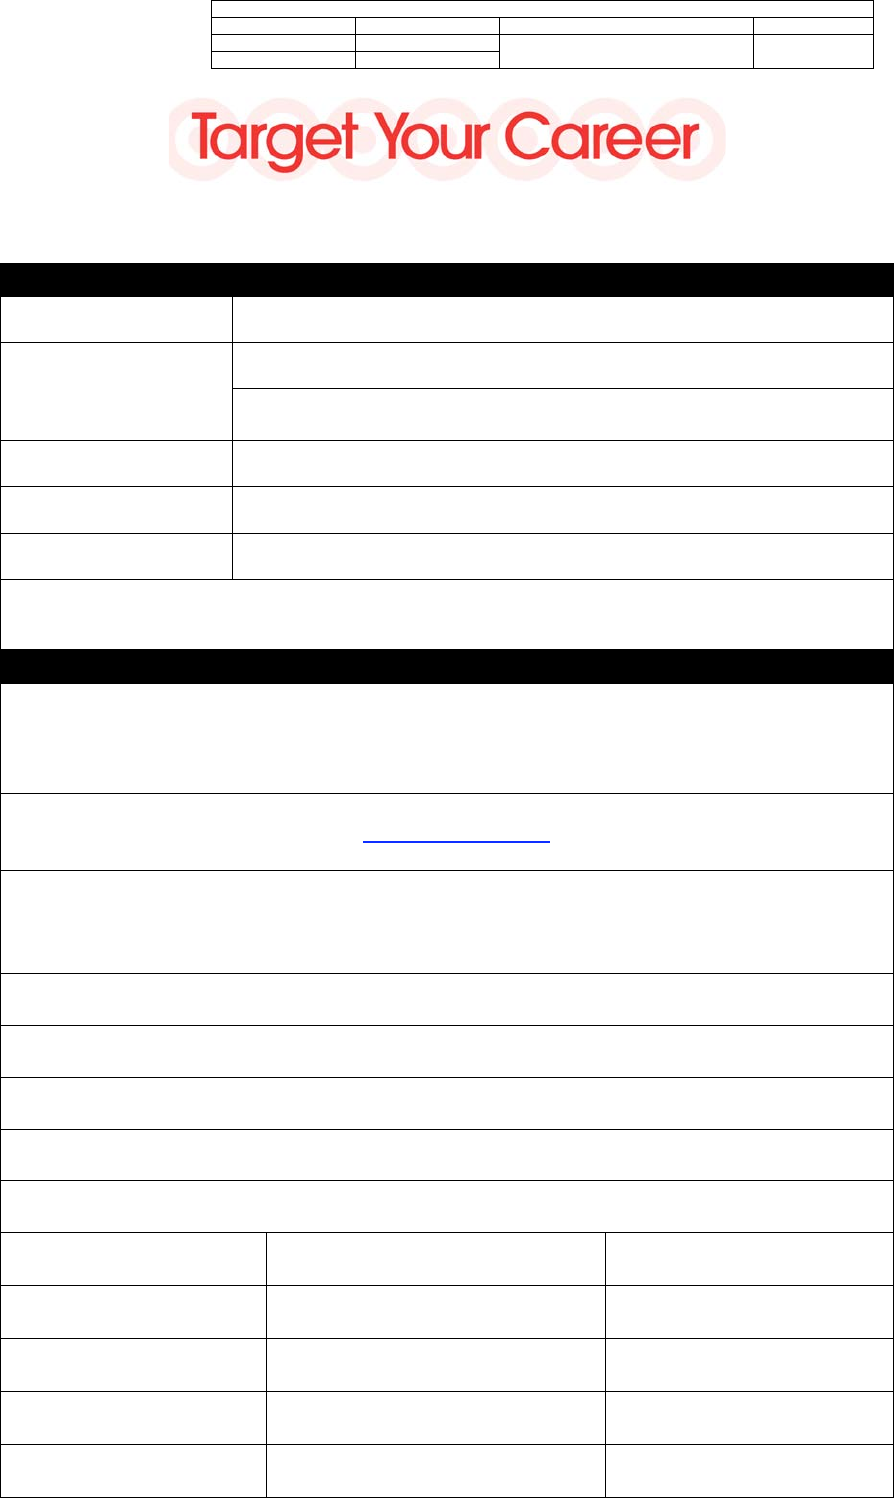 Free Printable Target Job Application Form